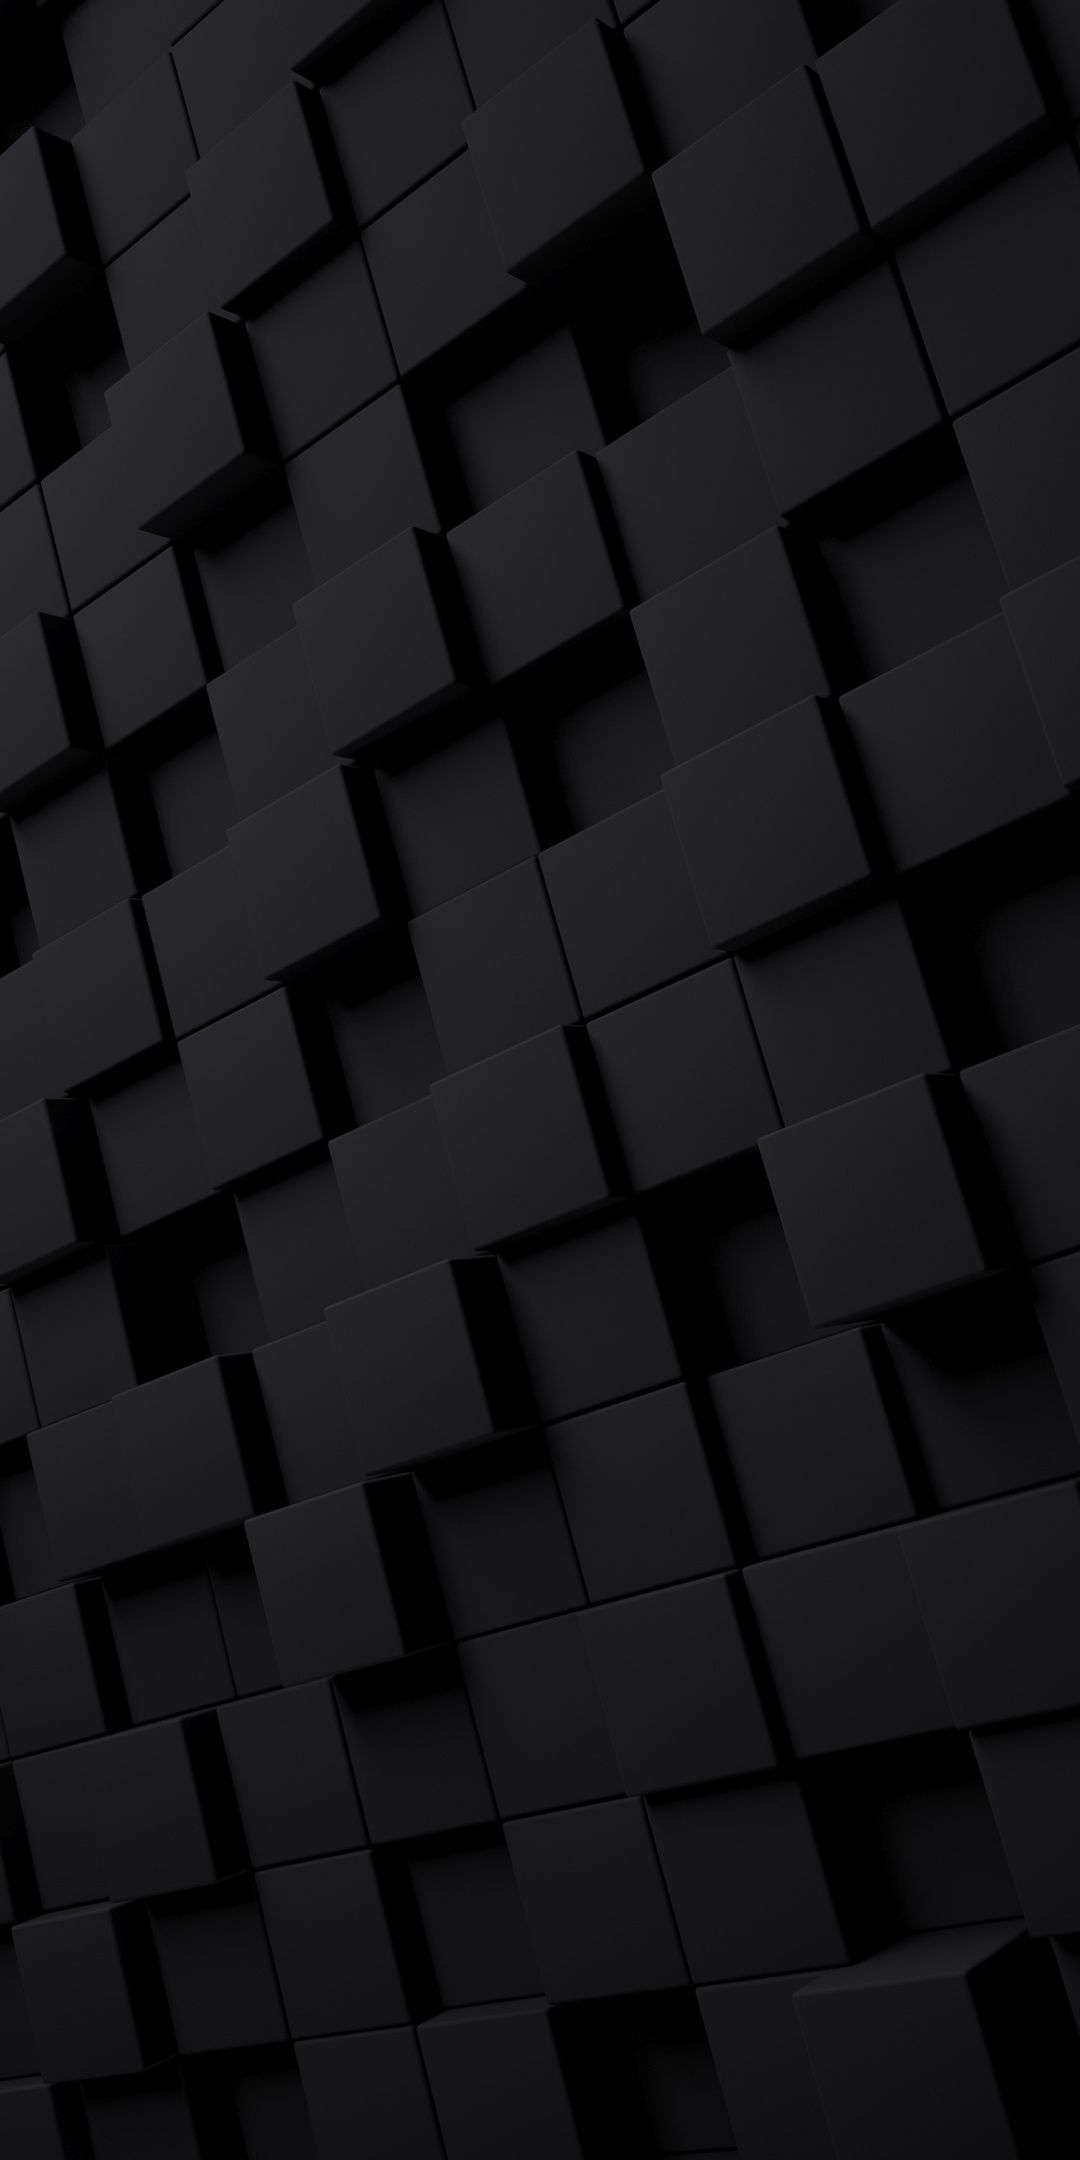 Download 1080x2160 Wallpaper Black Pattern Dark Cubes Abstract Honor 7x Honor 9 Lite Honor View Abstract Iphone Wallpaper Black Wallpaper Dark Wallpaper